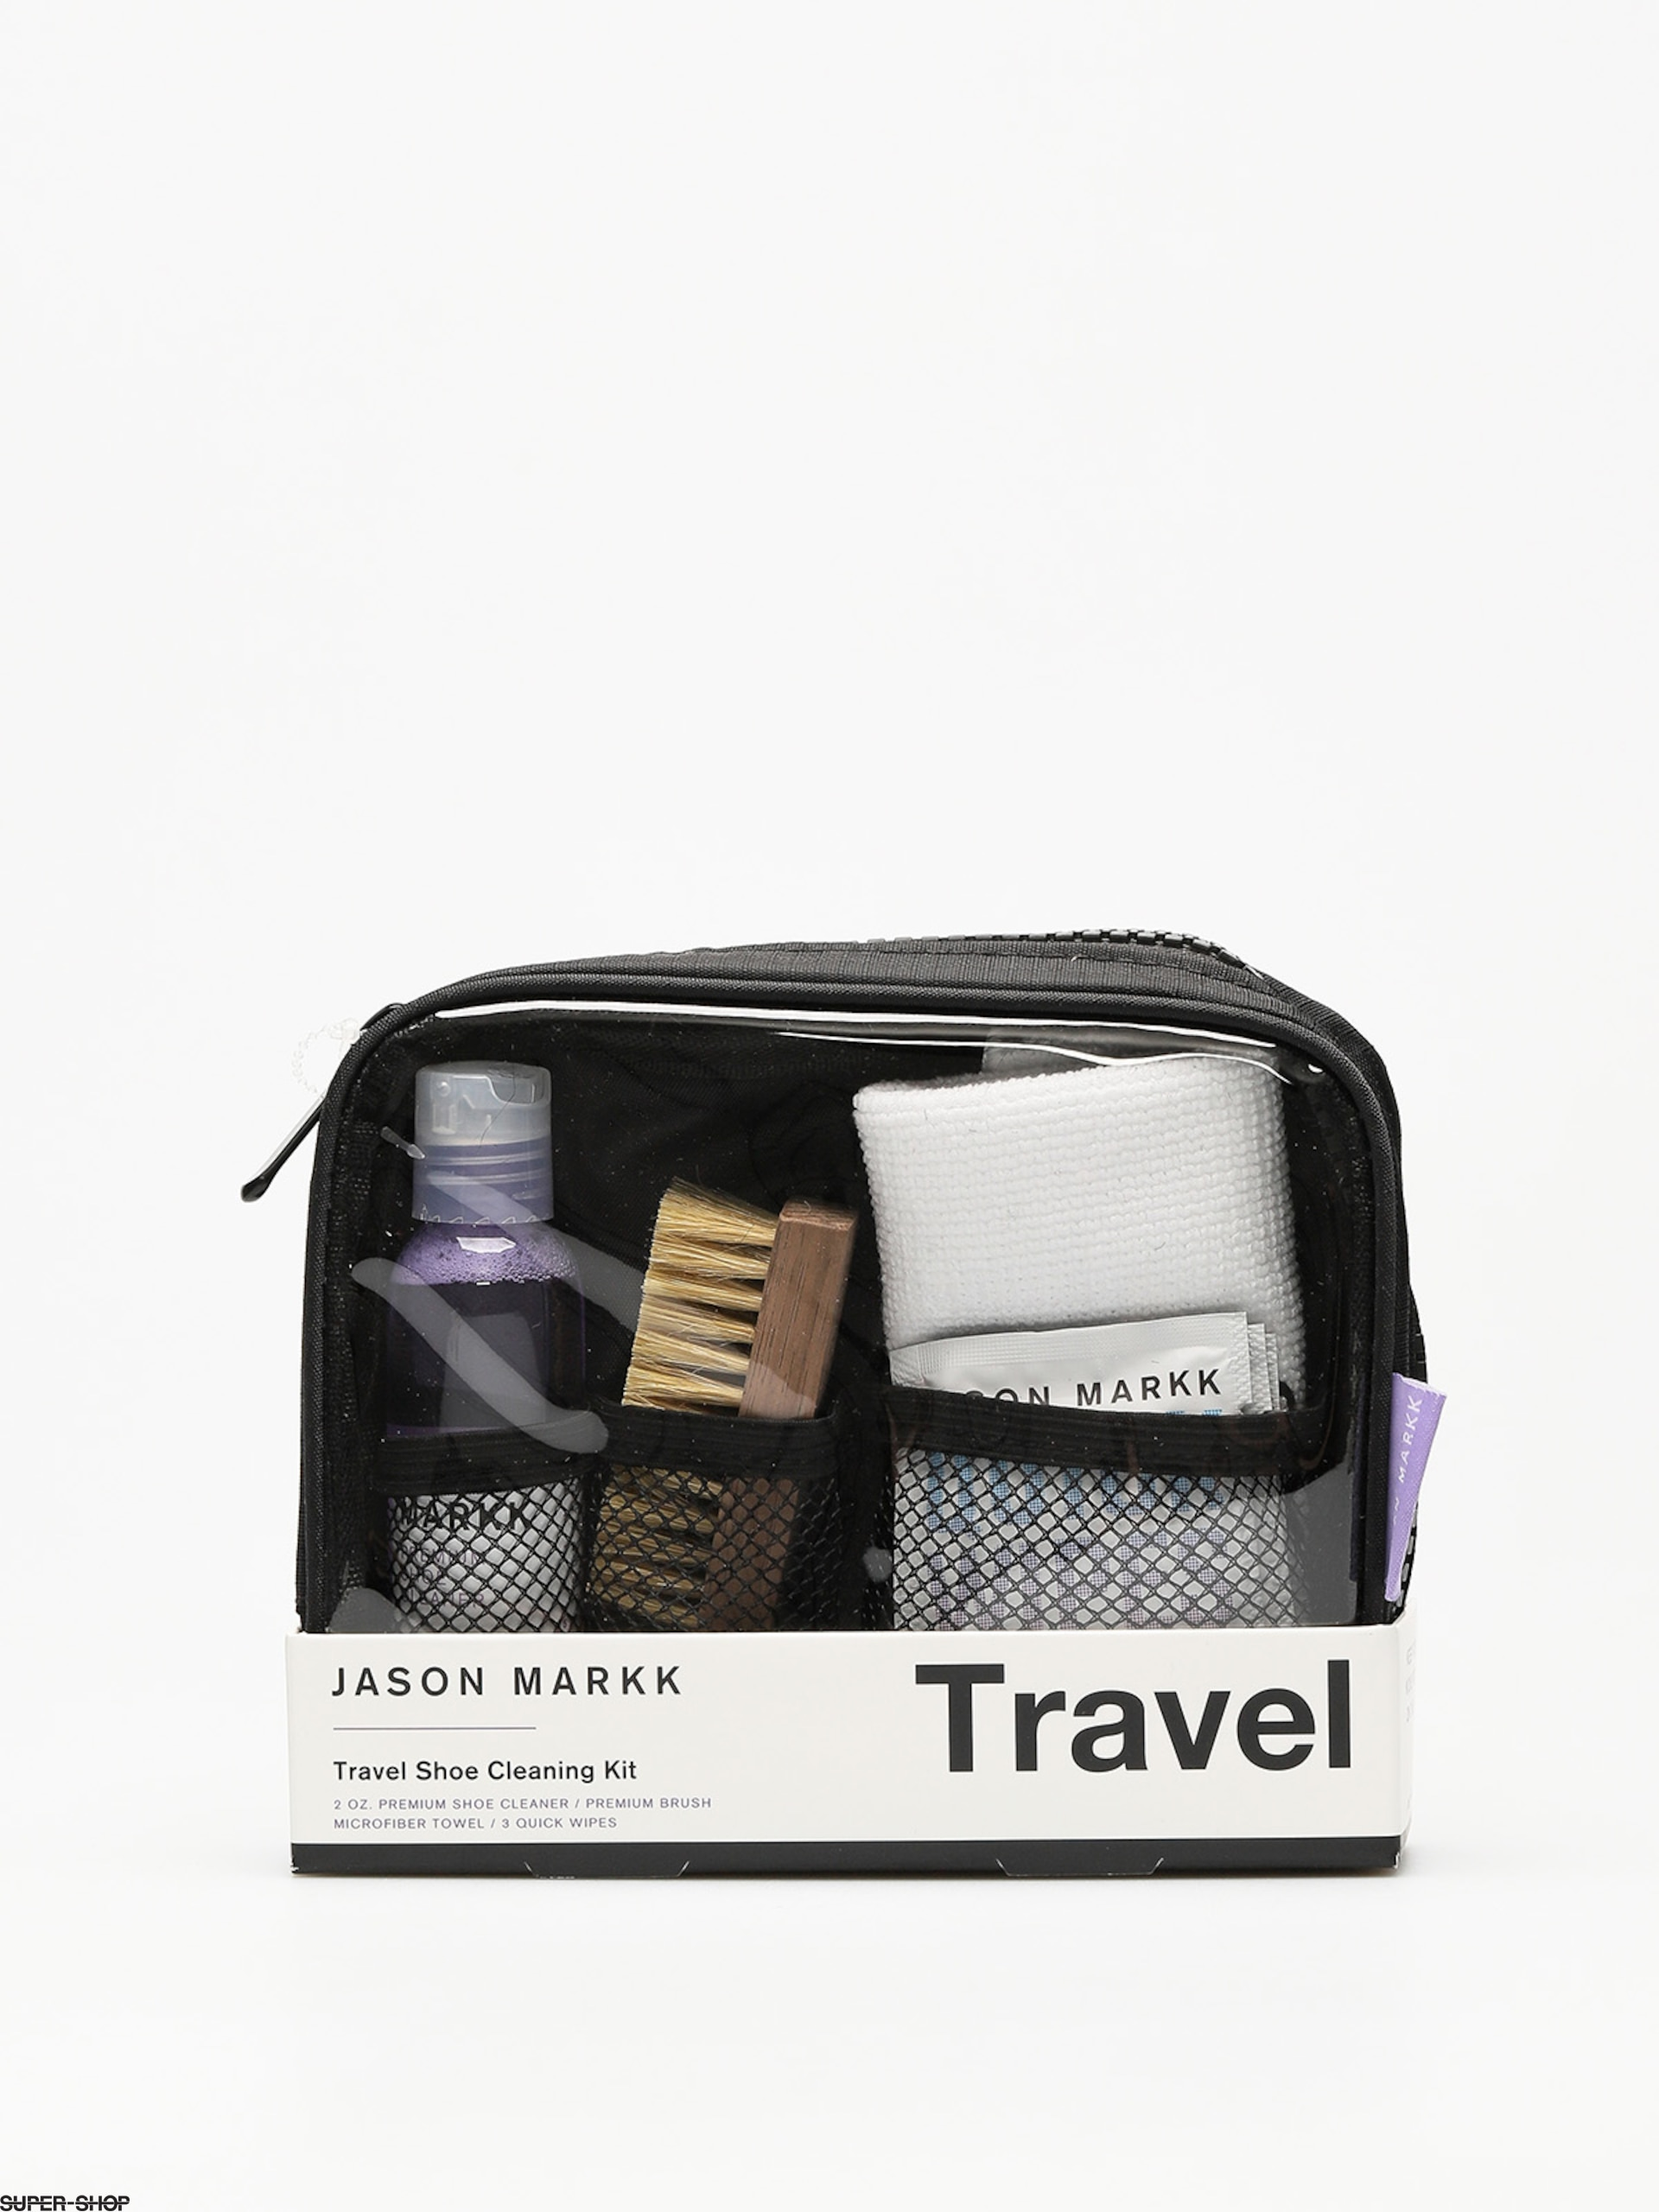 Jason Markk Cleaning kit Travel Kit